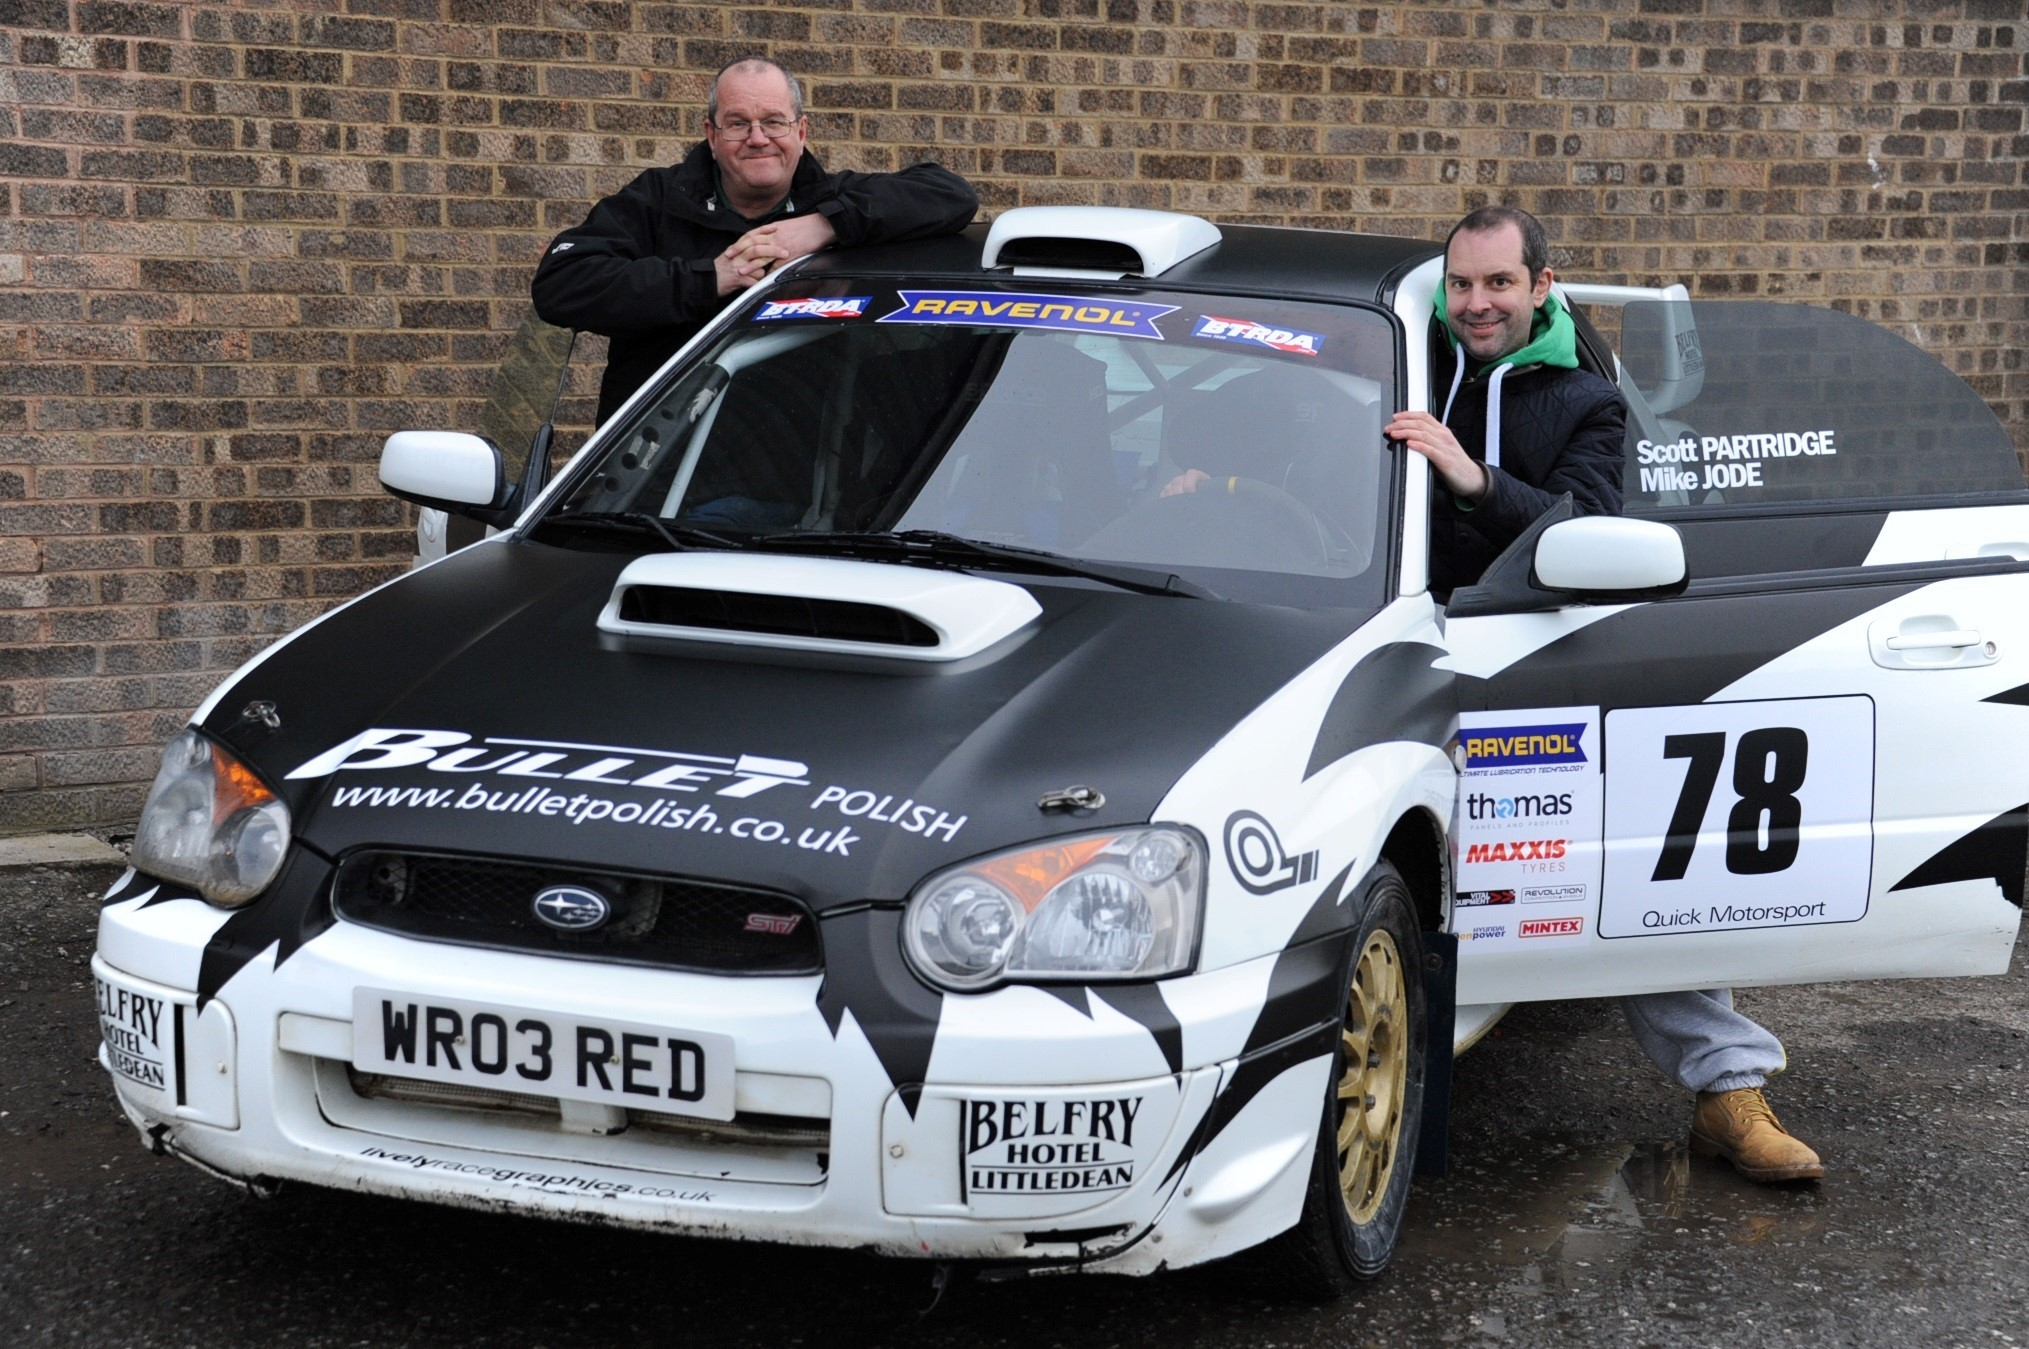 Scott Partridge (right) and Mike Jode finished 37th overall in the opening race of the BTRDA British Rally Championship